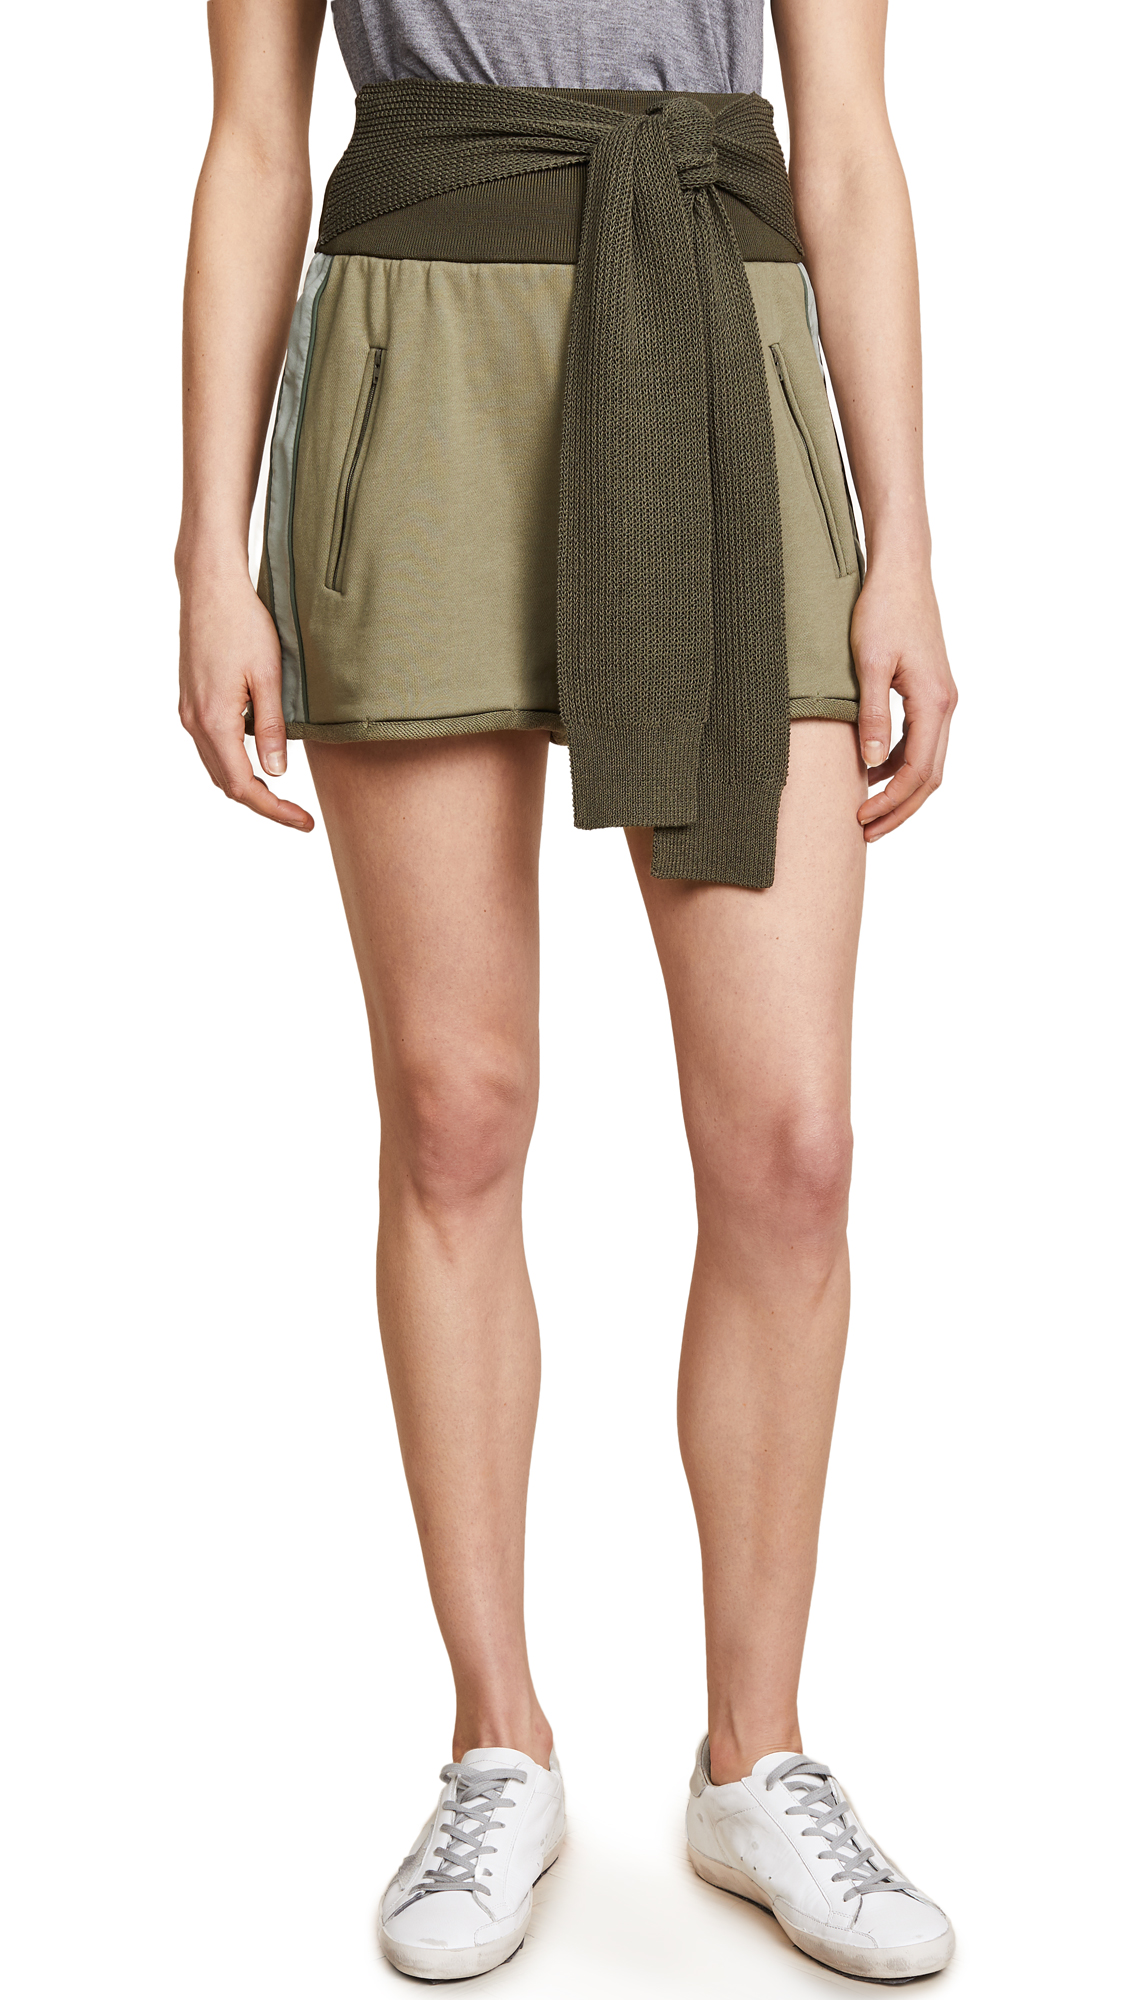 3.1 Phillip Lim Shorts with Tie - Moss